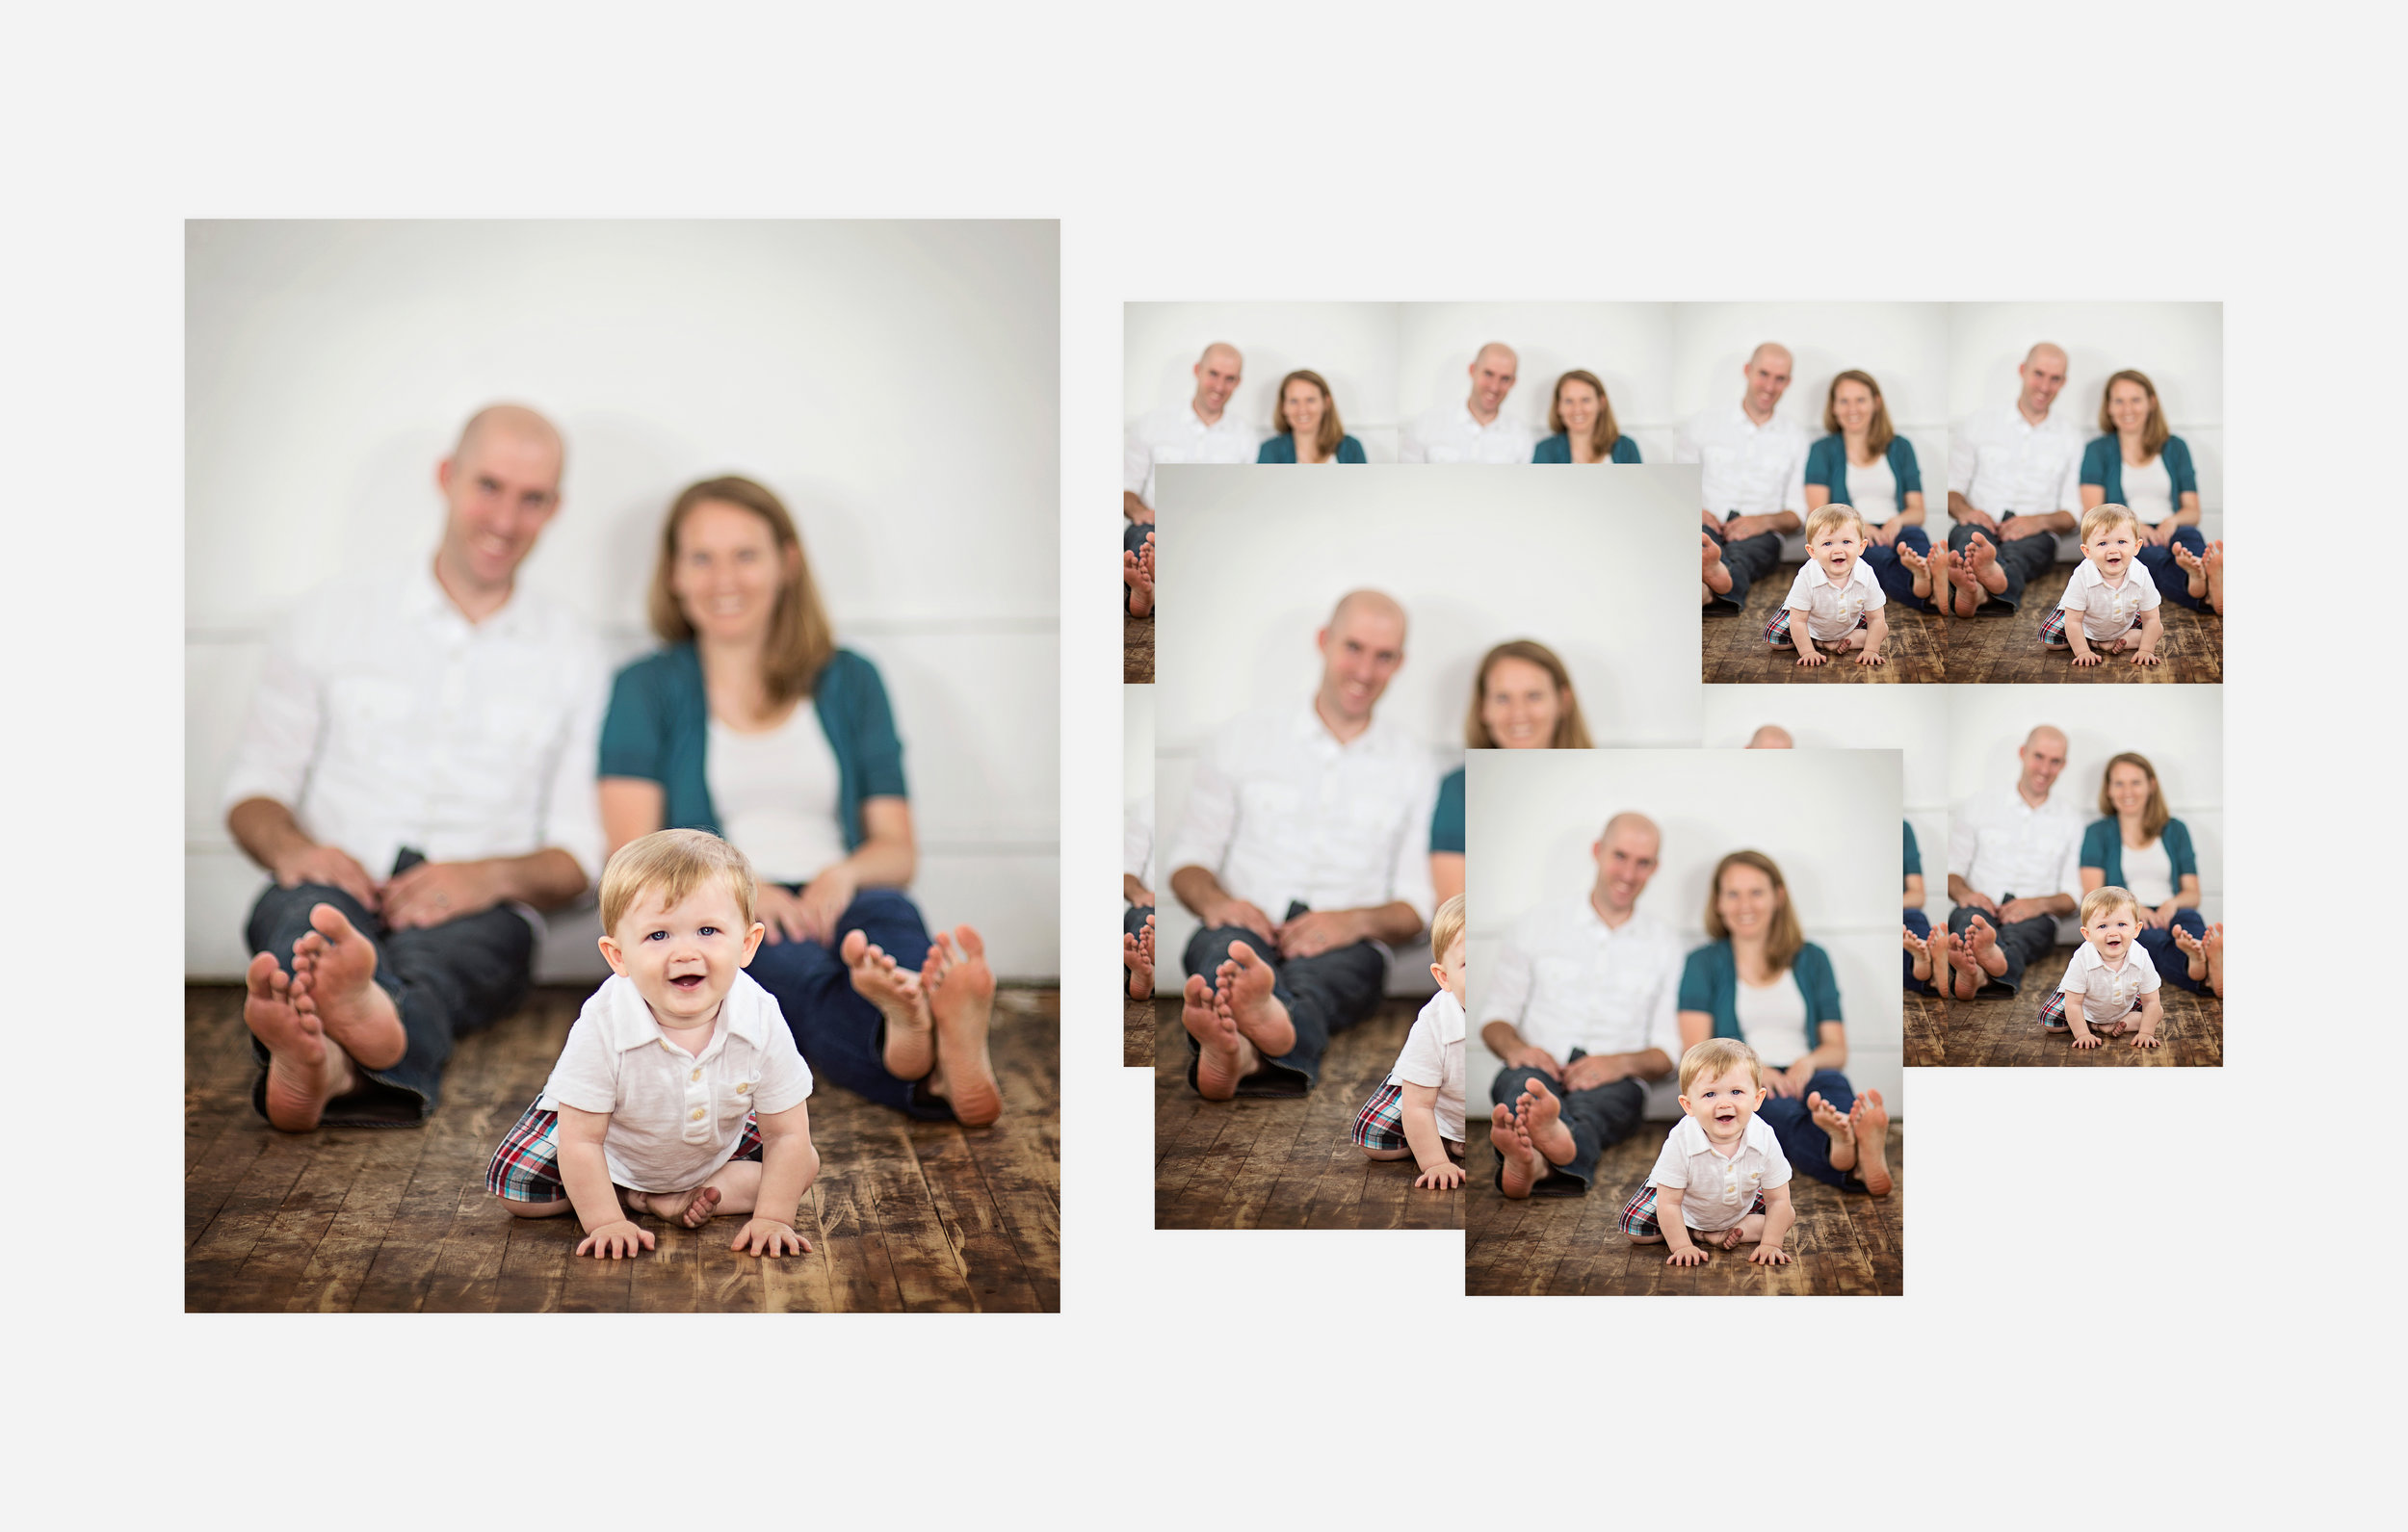 Quality Prints - Prints of all sizesPrinted on the world's finest photographic paper. Prints are available with an array of beautiful surface modificationsand mounting options.